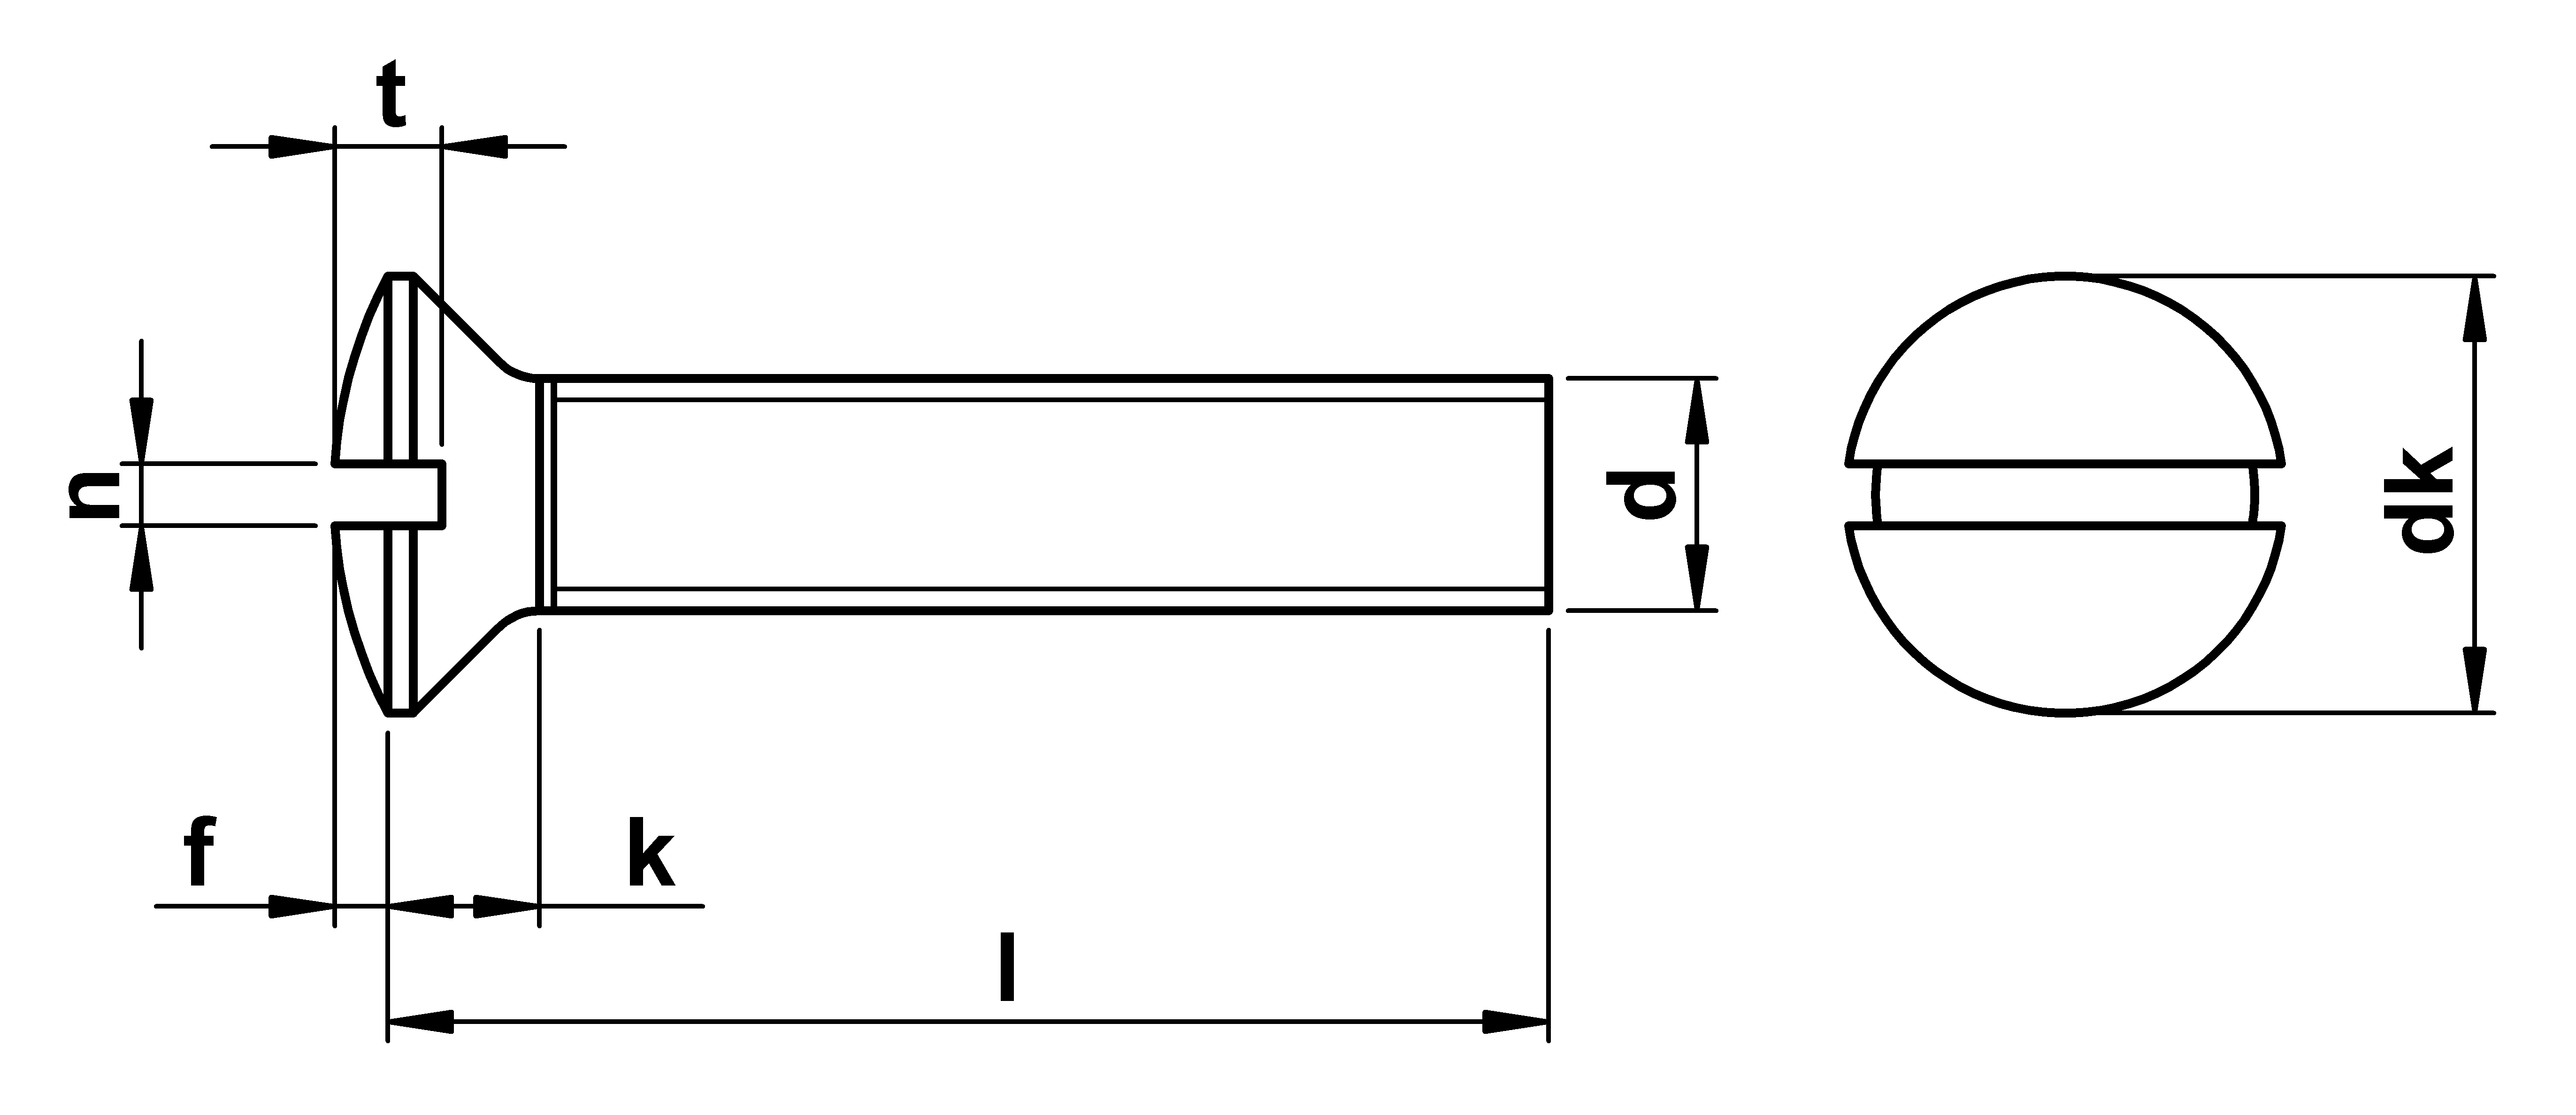 technical drawing of Slotted Raised Csk Machine Screws ISO 2010 (DIN 964)